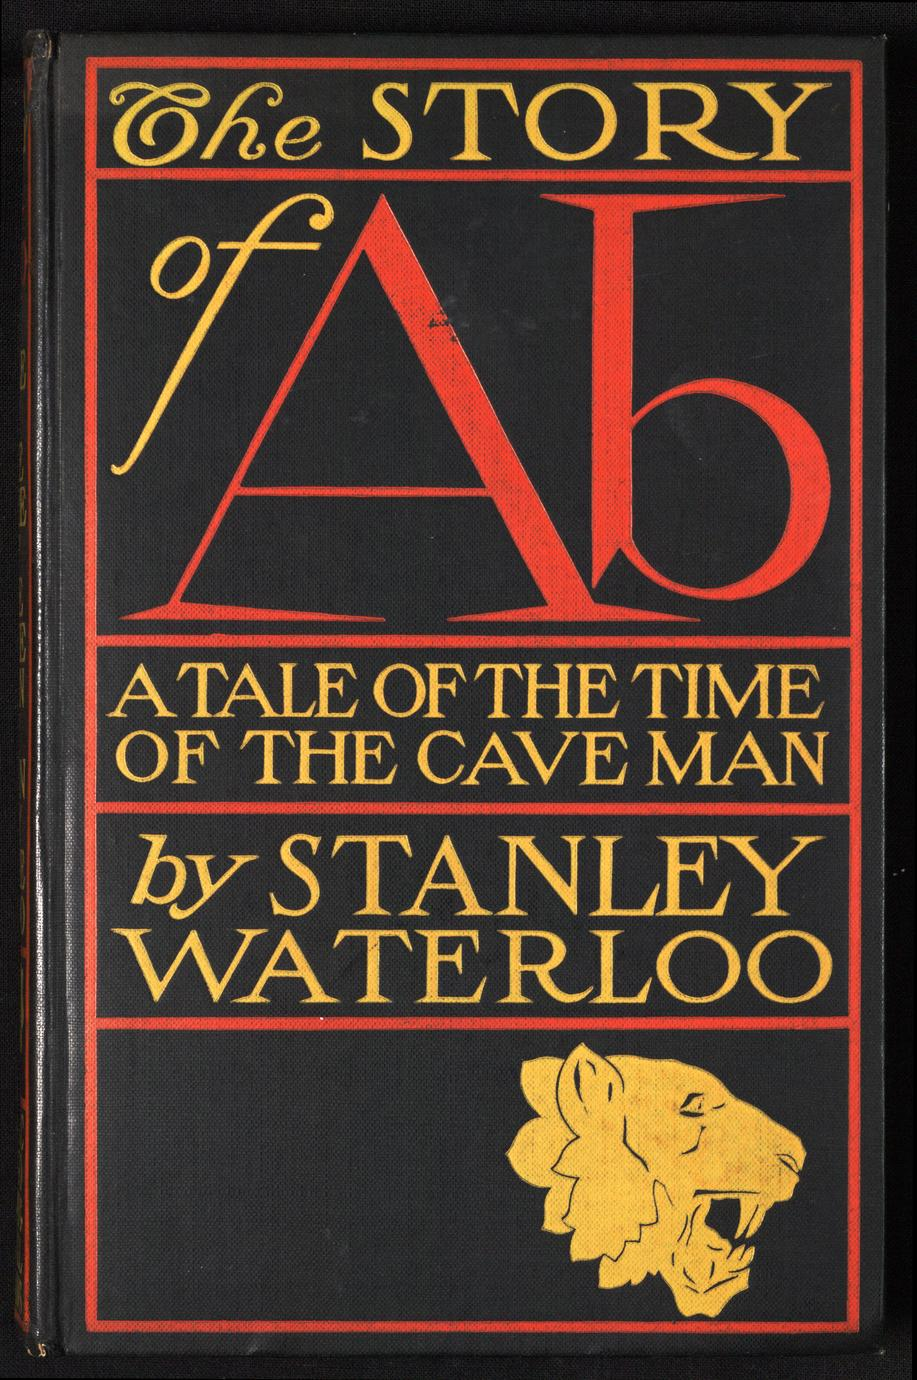 The story of Ab : a tale of the time of the cave man (1 of 2)